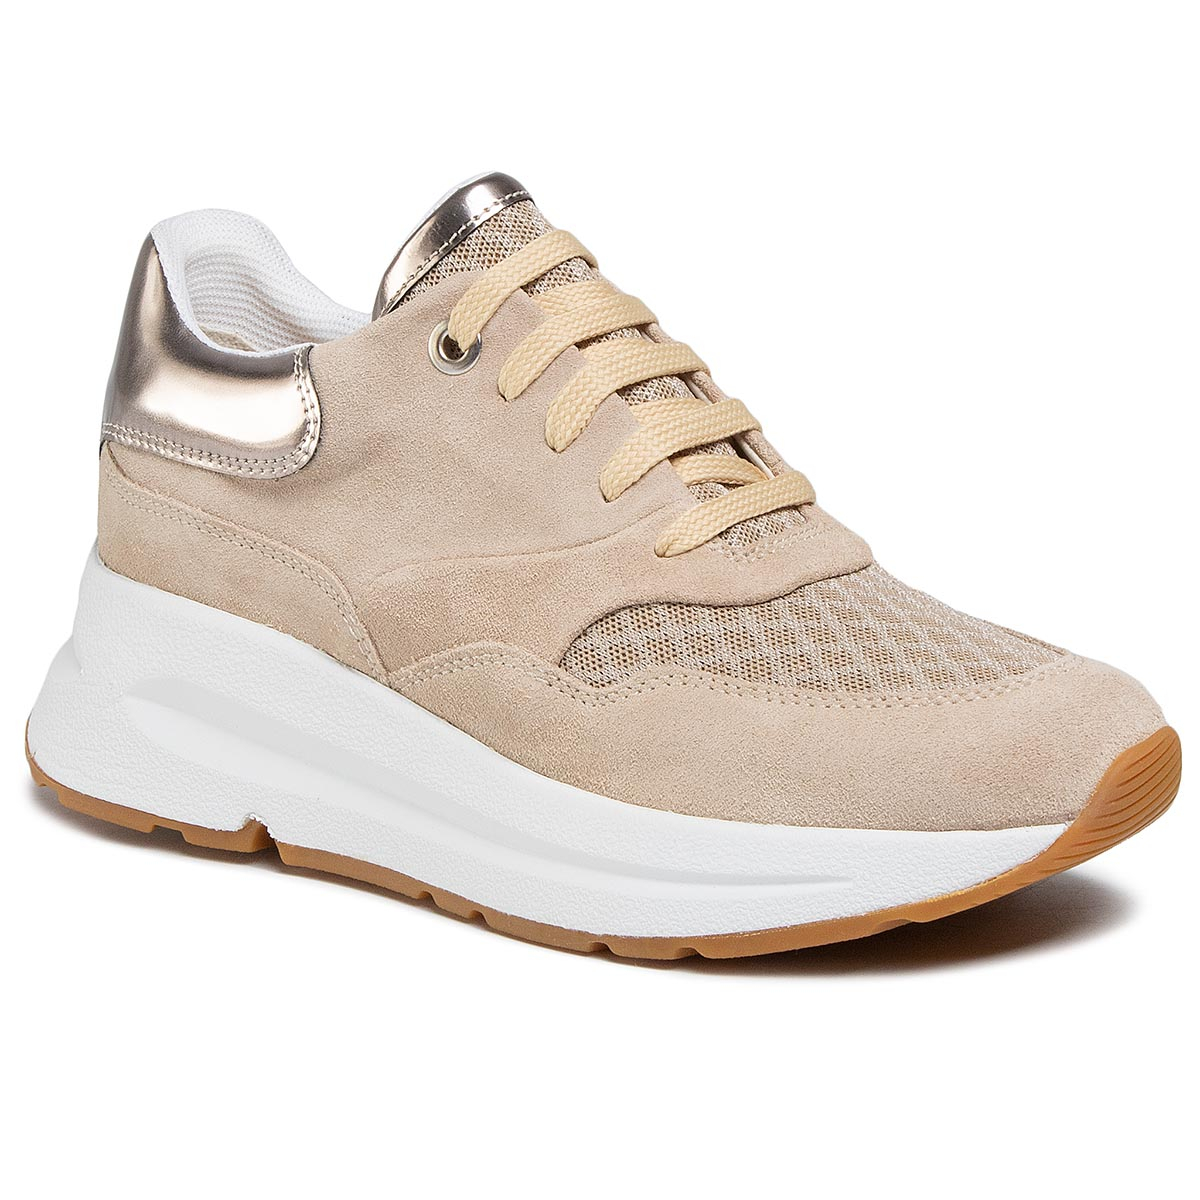 Sneakers GEOX - D Backsie C D02FLC 022GN C6738 Lt Taupe